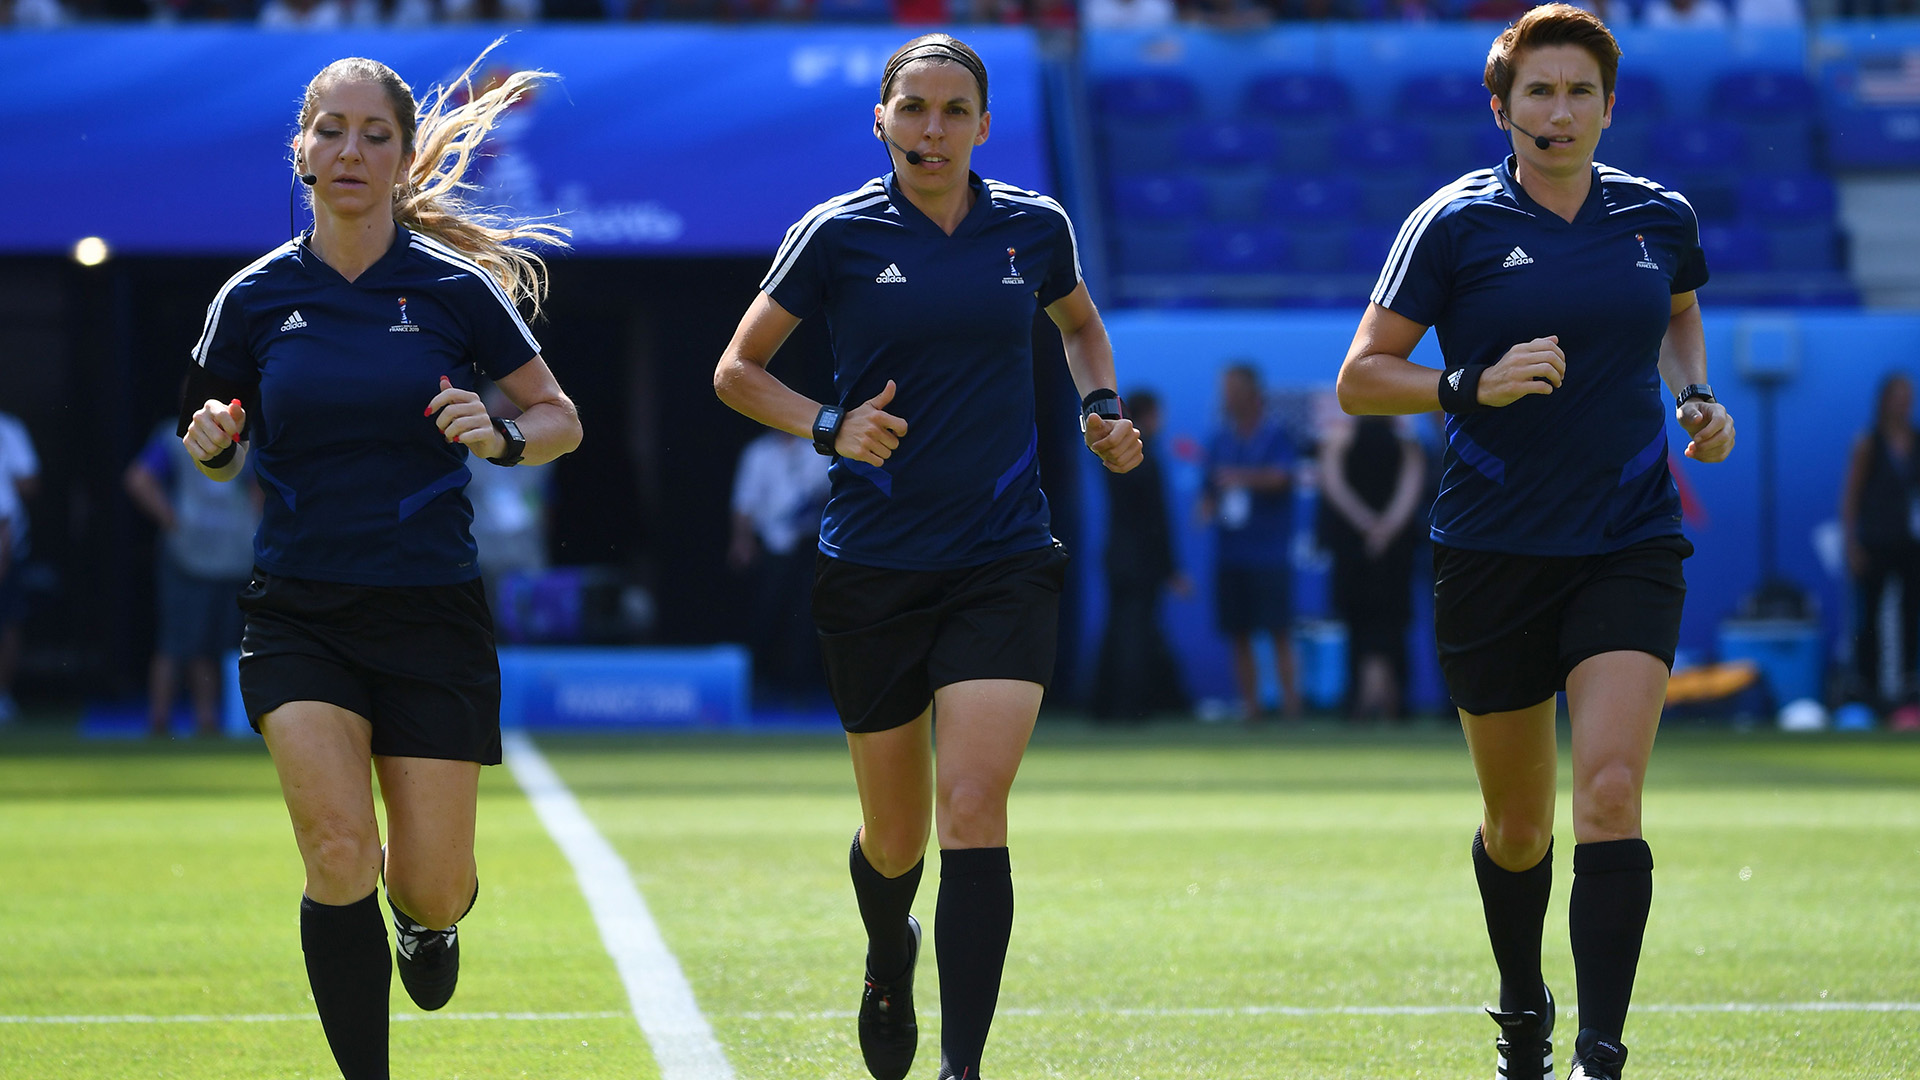 Manuela Nicolosi Stephanie Frappart Michelle O'Neill referee Women's World Cup final 2019